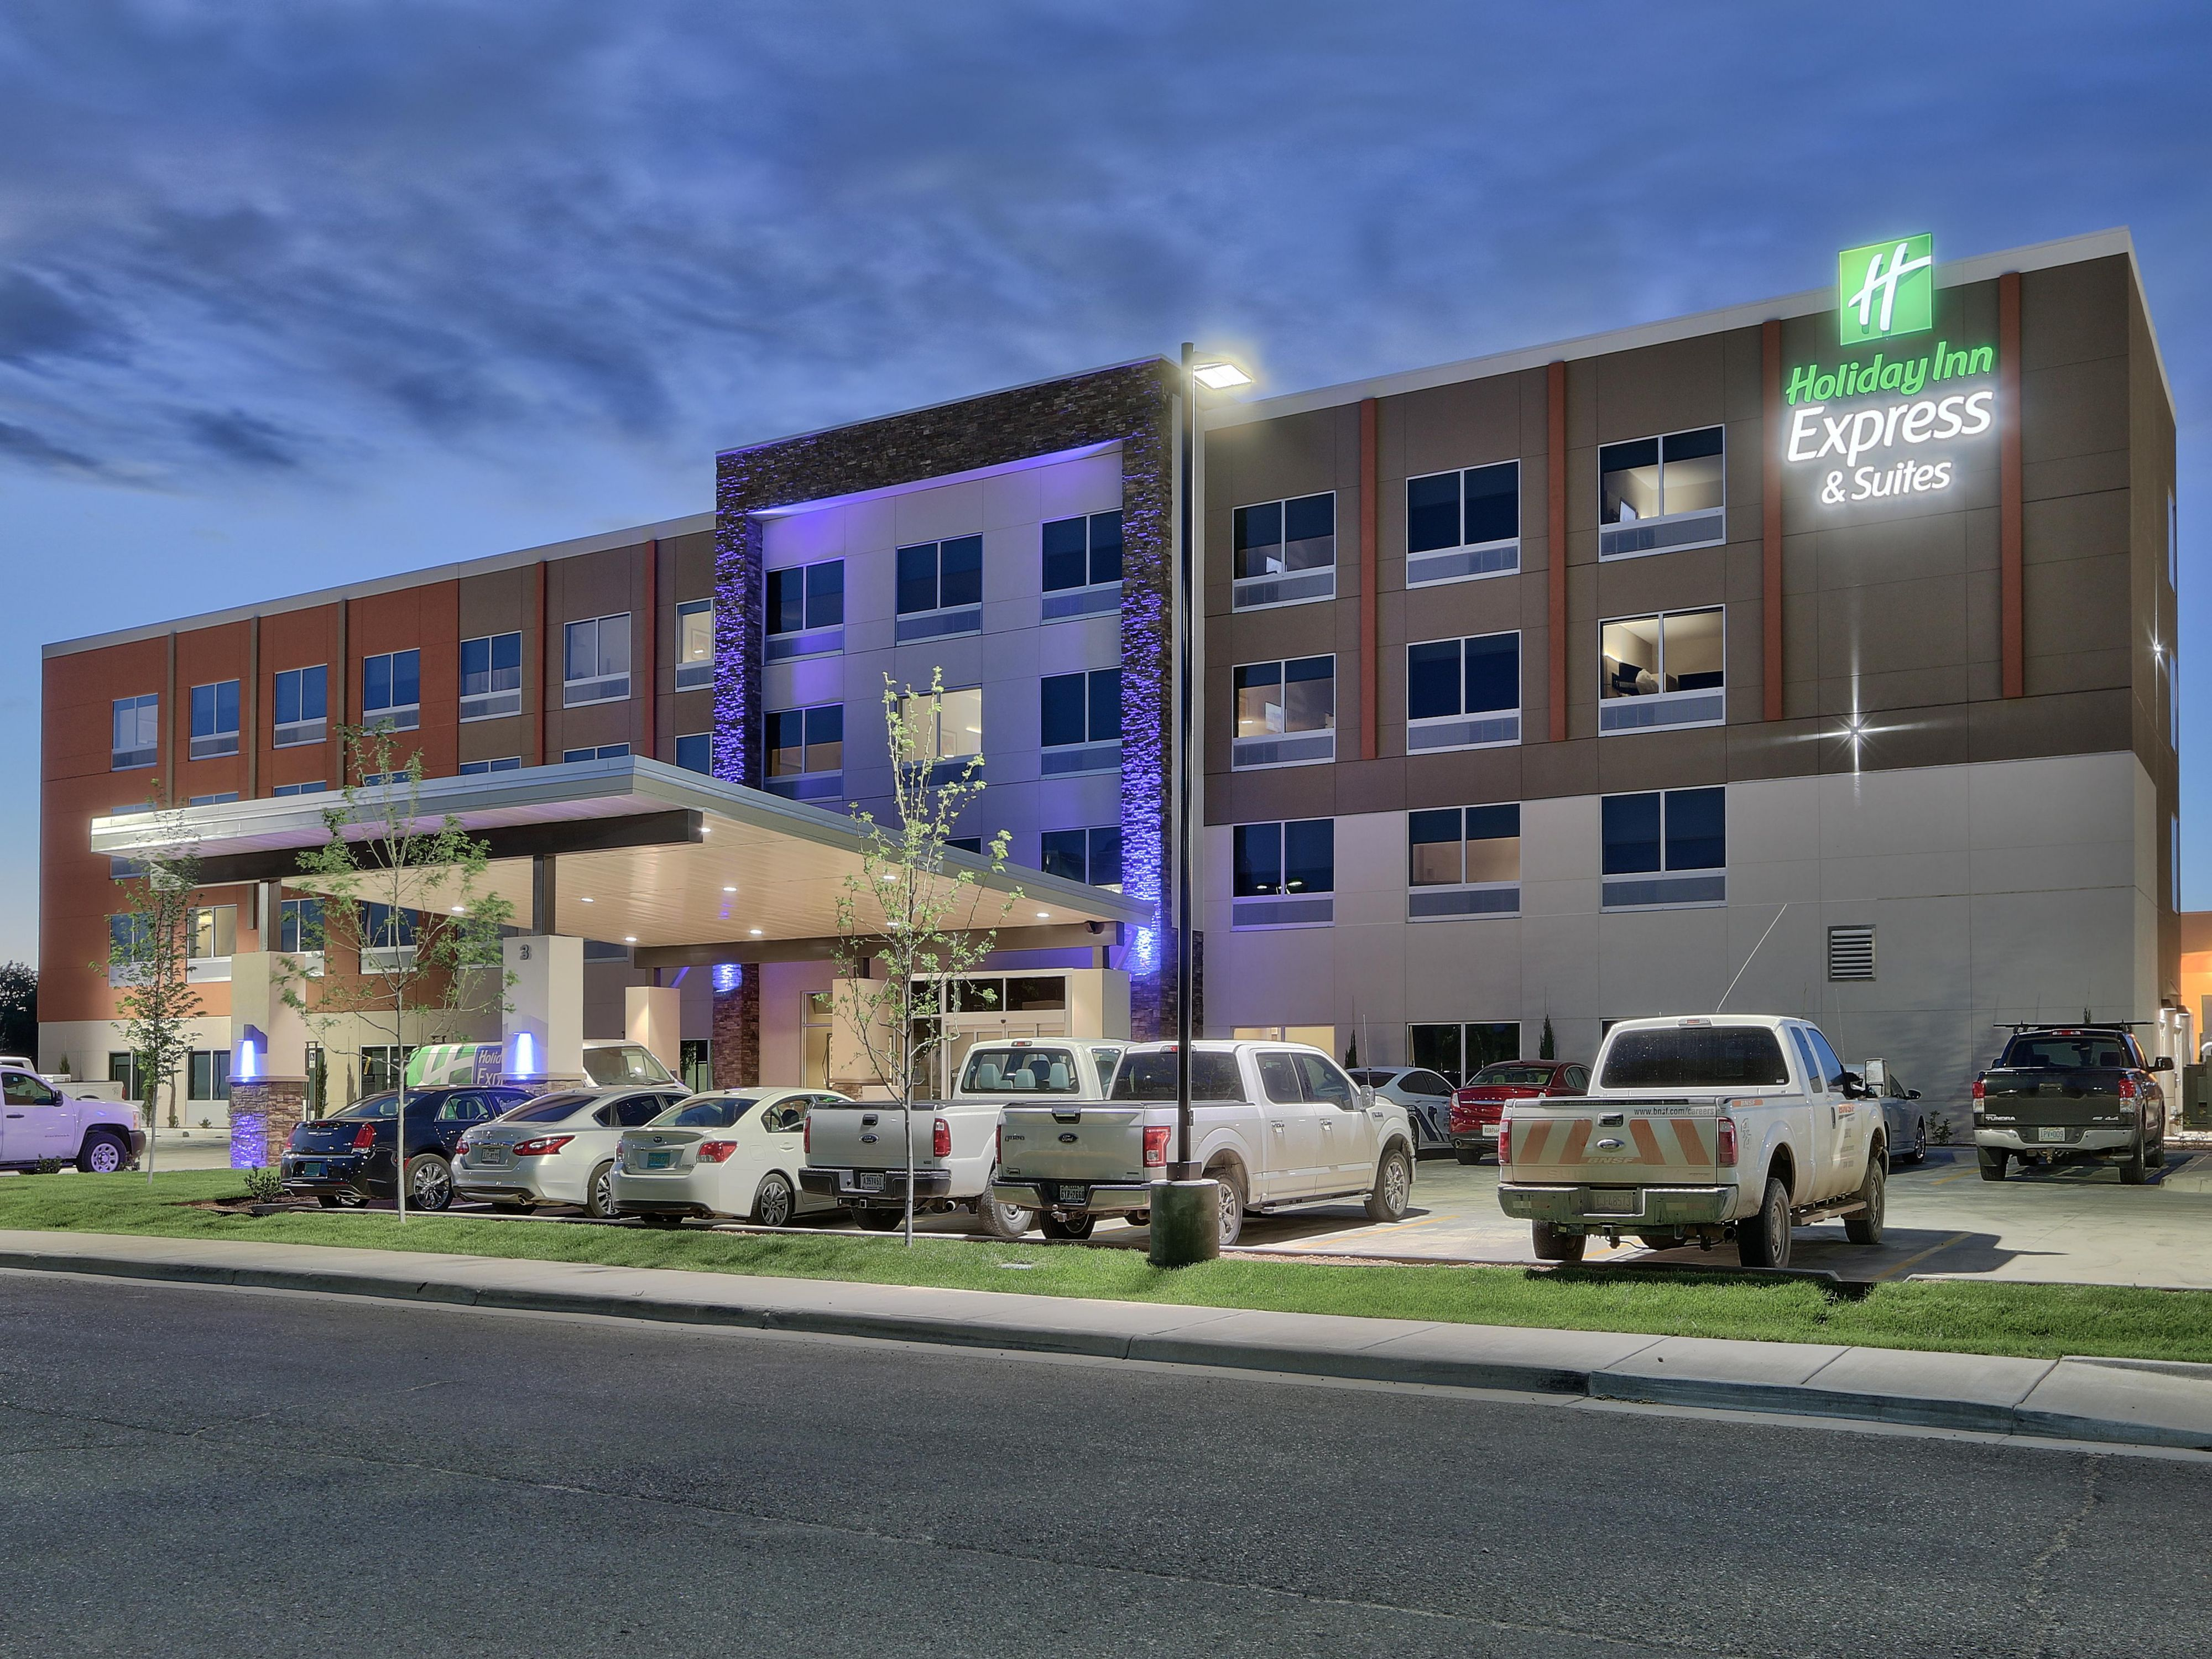 Roswell Nm Zip Code Map.Holiday Inn Express Suites Roswell Hotel By Ihg